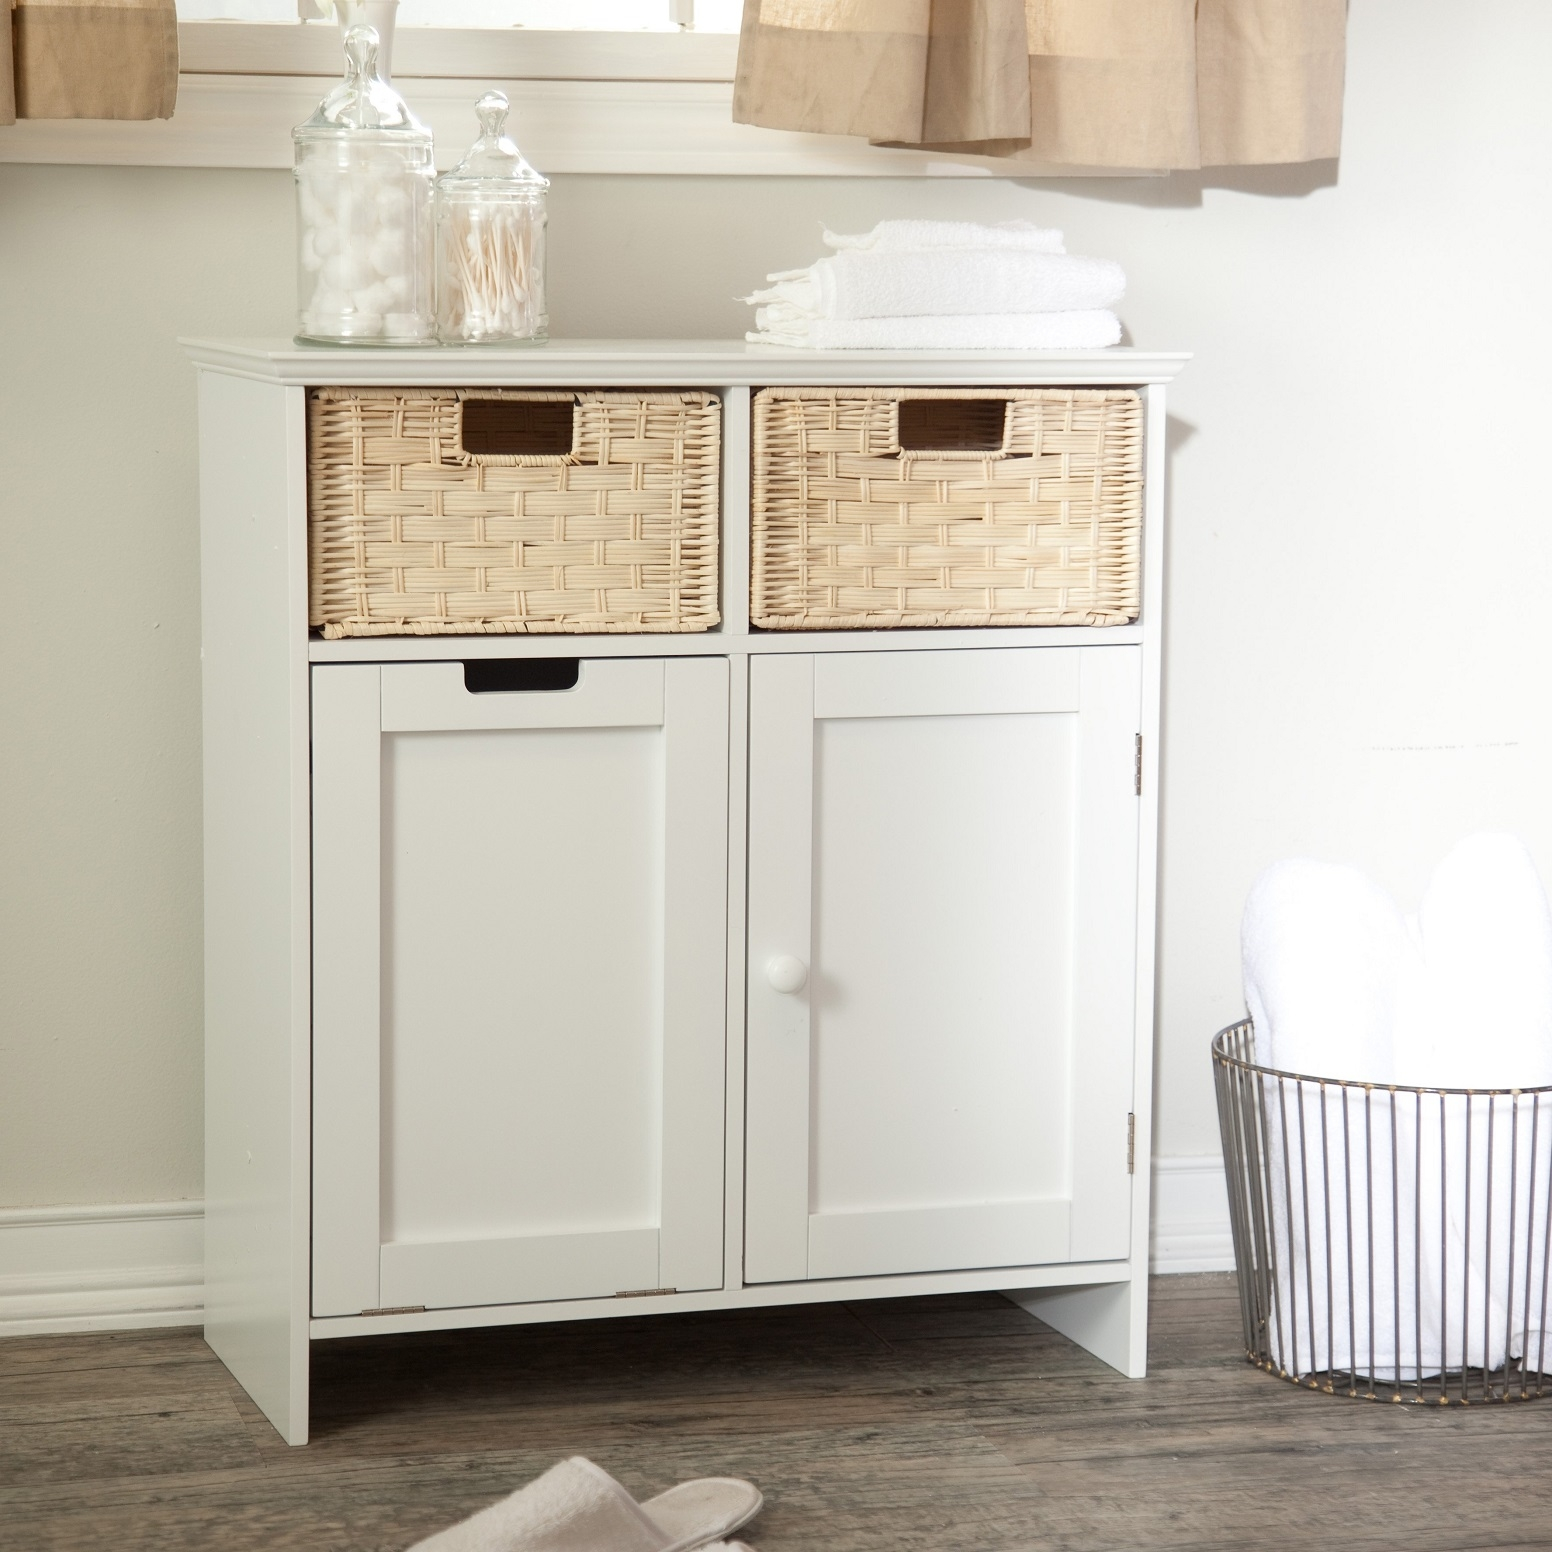 Aristokraft Bathroom Cabinets With Hamper